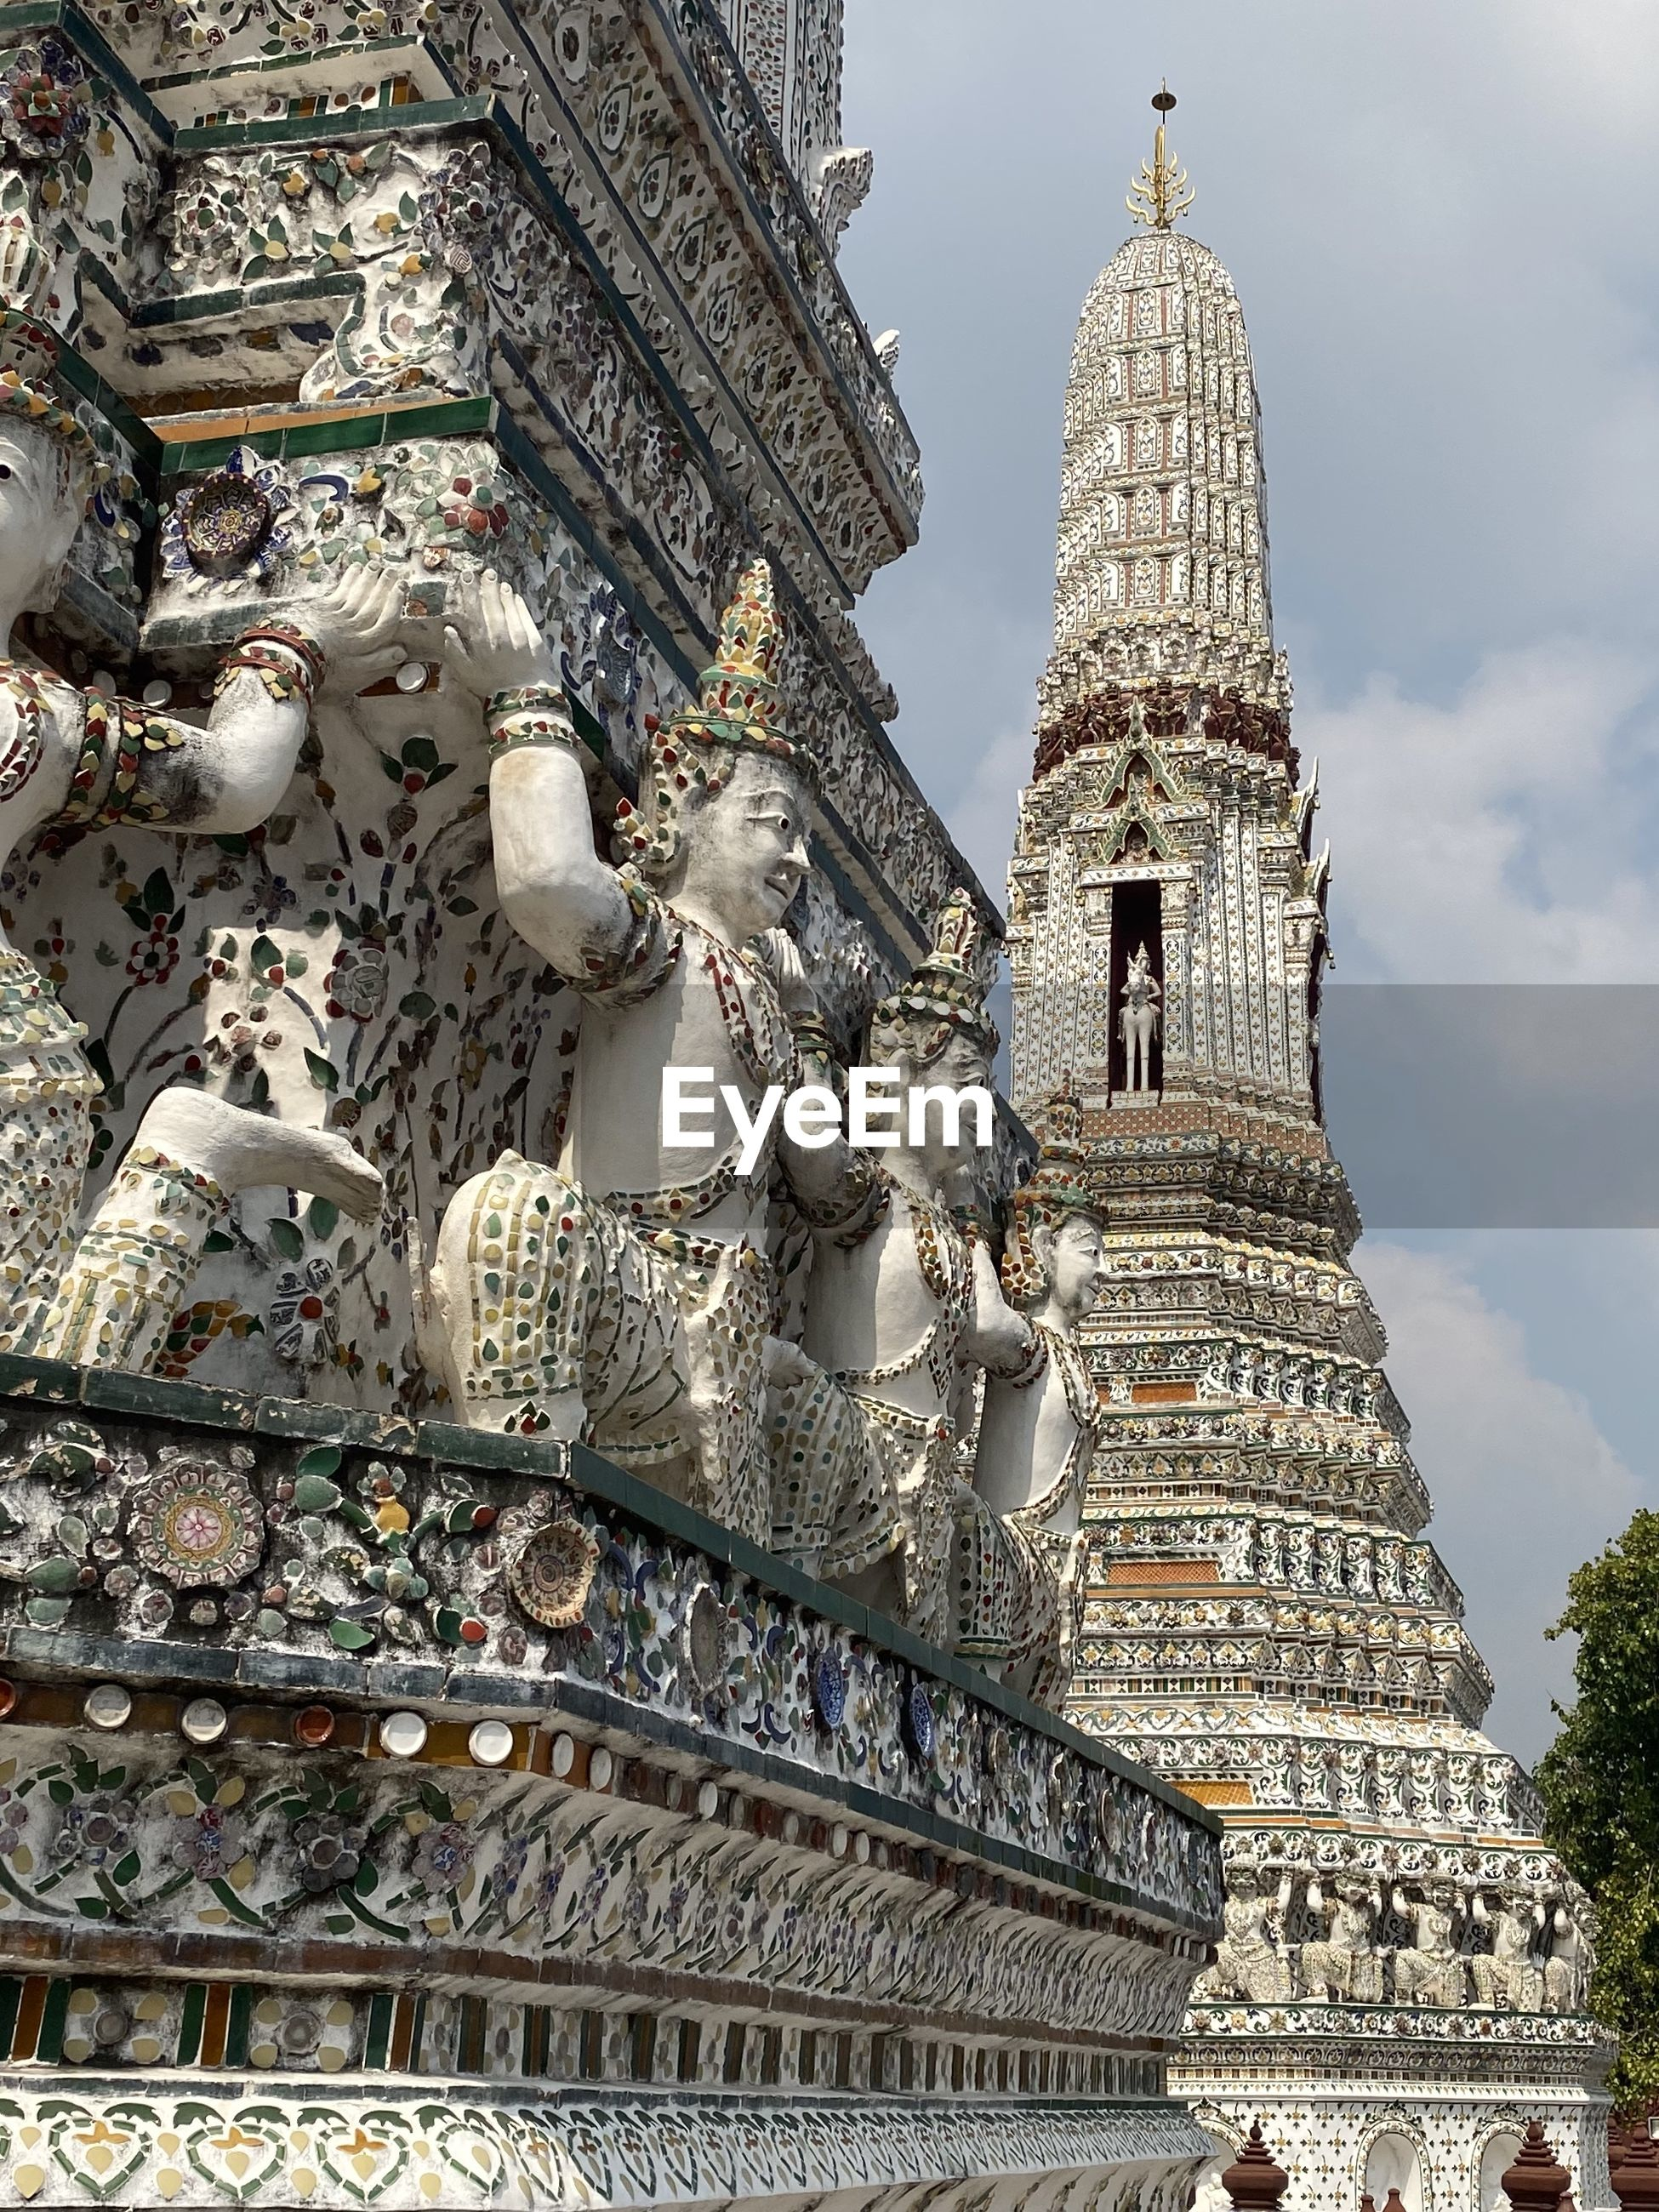 LOW ANGLE VIEW OF STATUES ON BUILDING